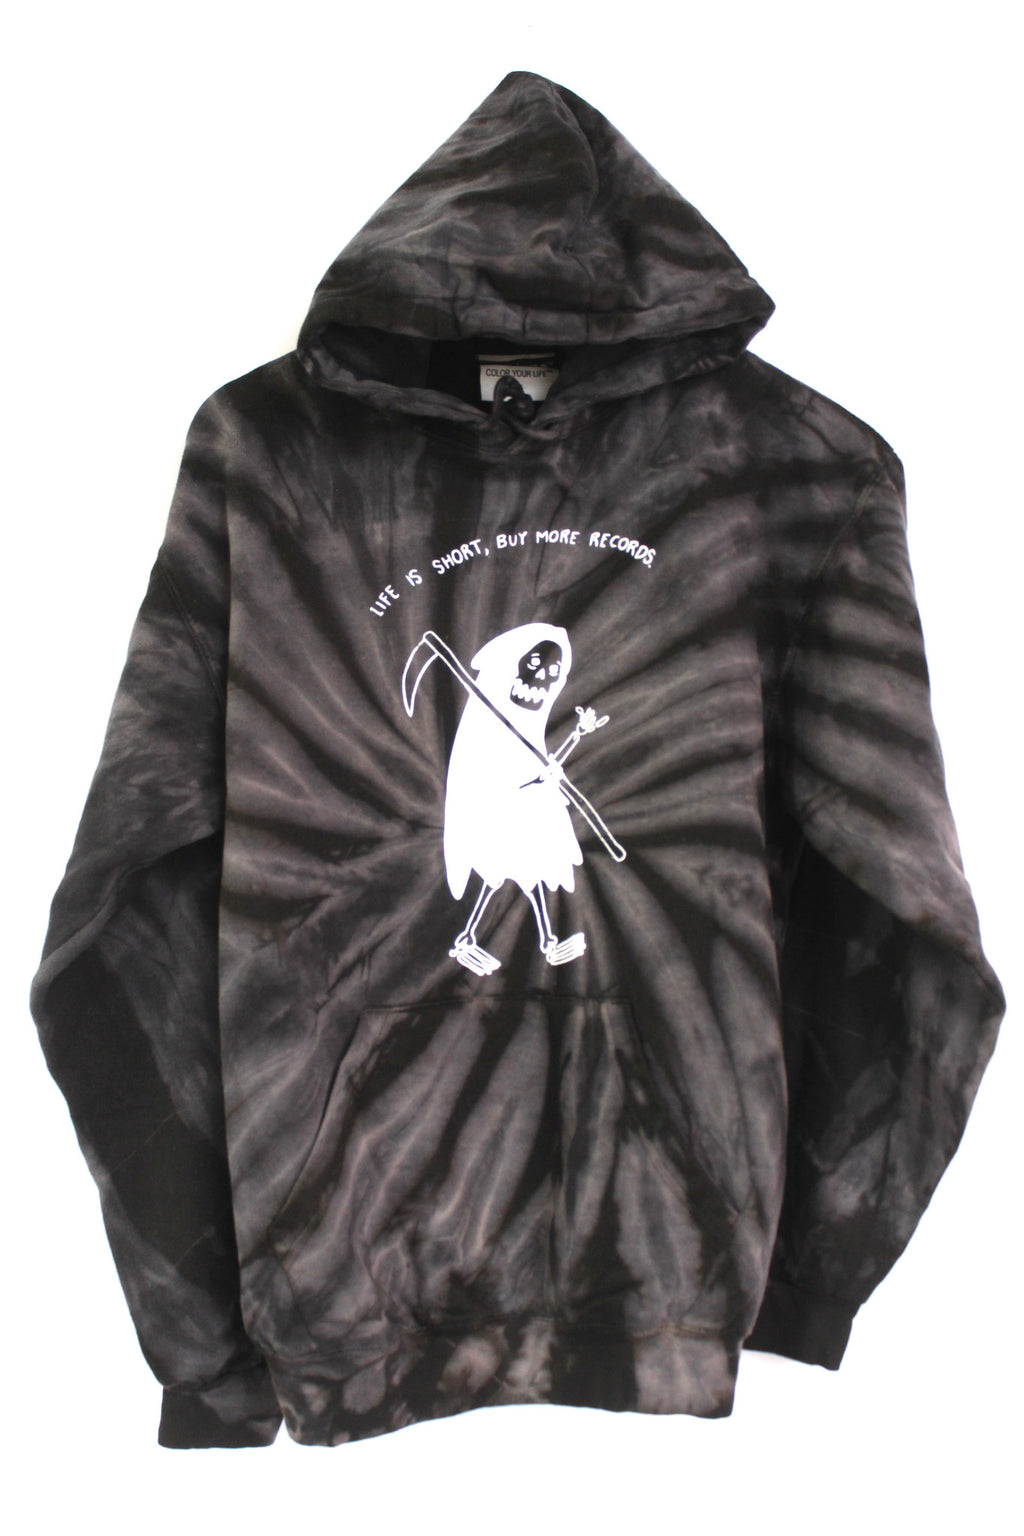 Buy More Records Grim Reaper Black Tie-Dye Hoodie